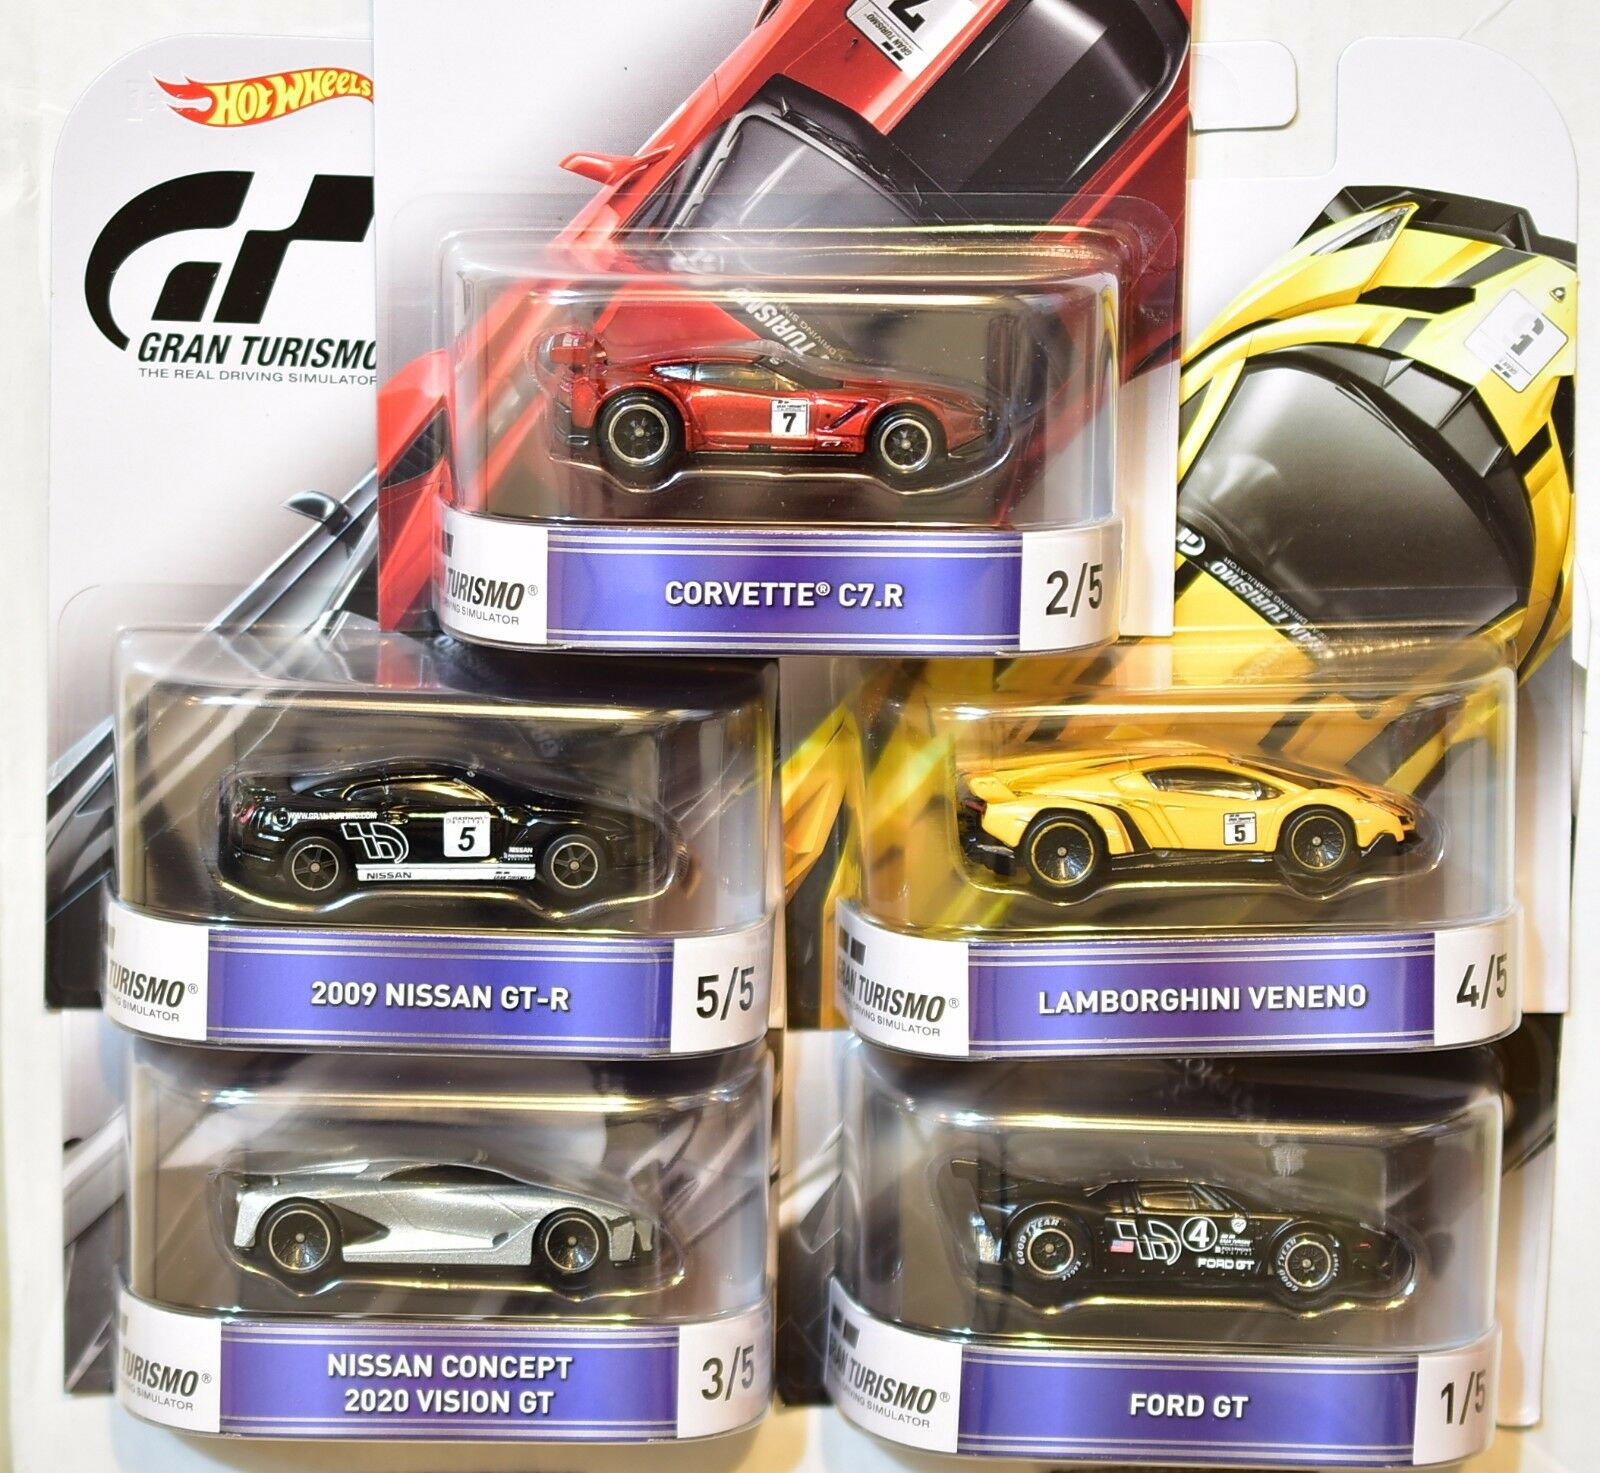 HOT WHEELS RETRO ENTERTAINMENT 2016 COMPLETE SET OF 5 GRAN TURISMO BAD CARDS